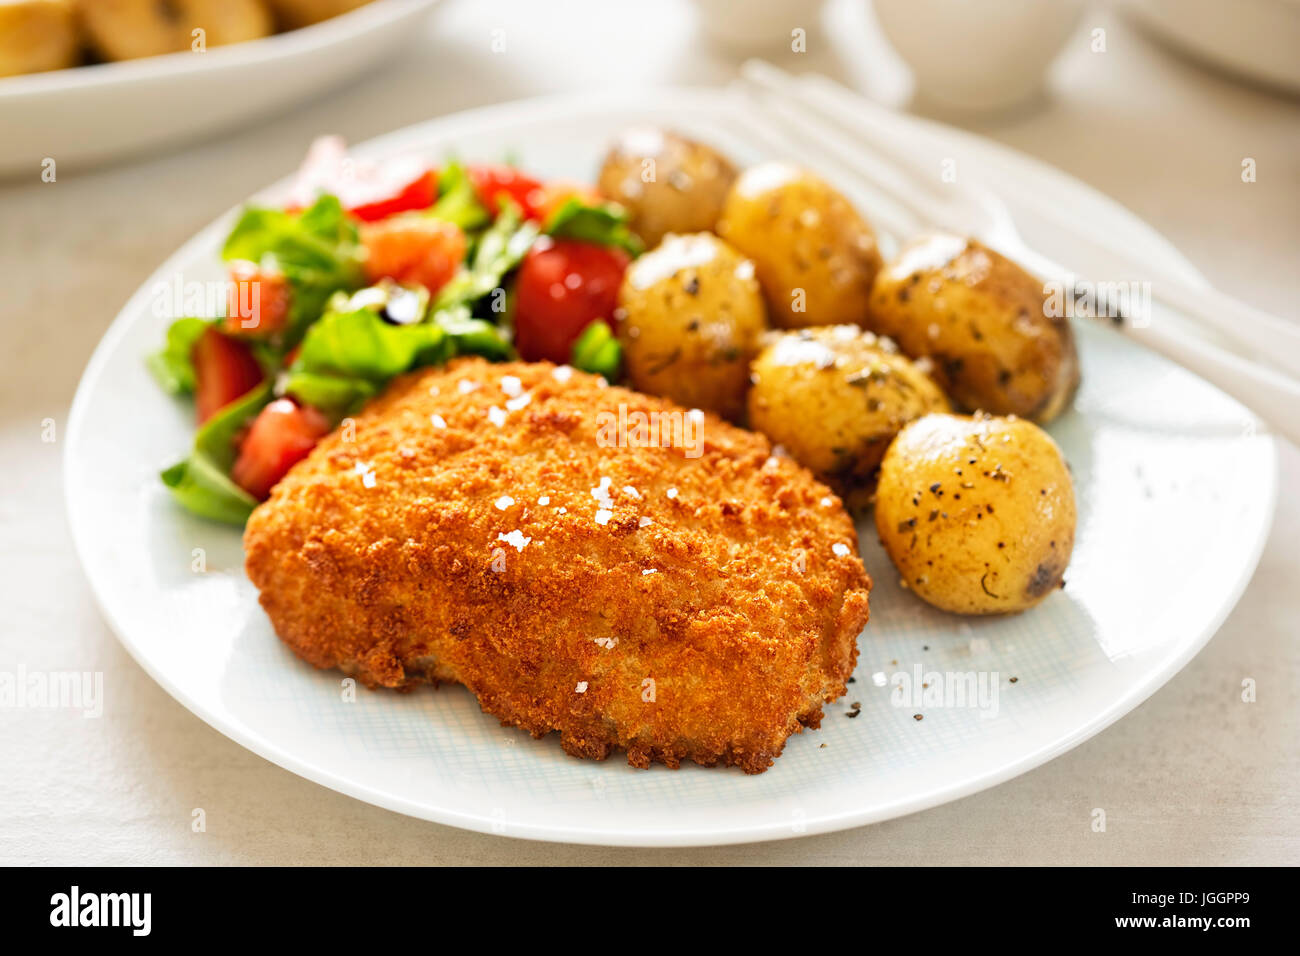 Traditional breaded fillet of cod with baby potatoes and salad - Stock Image